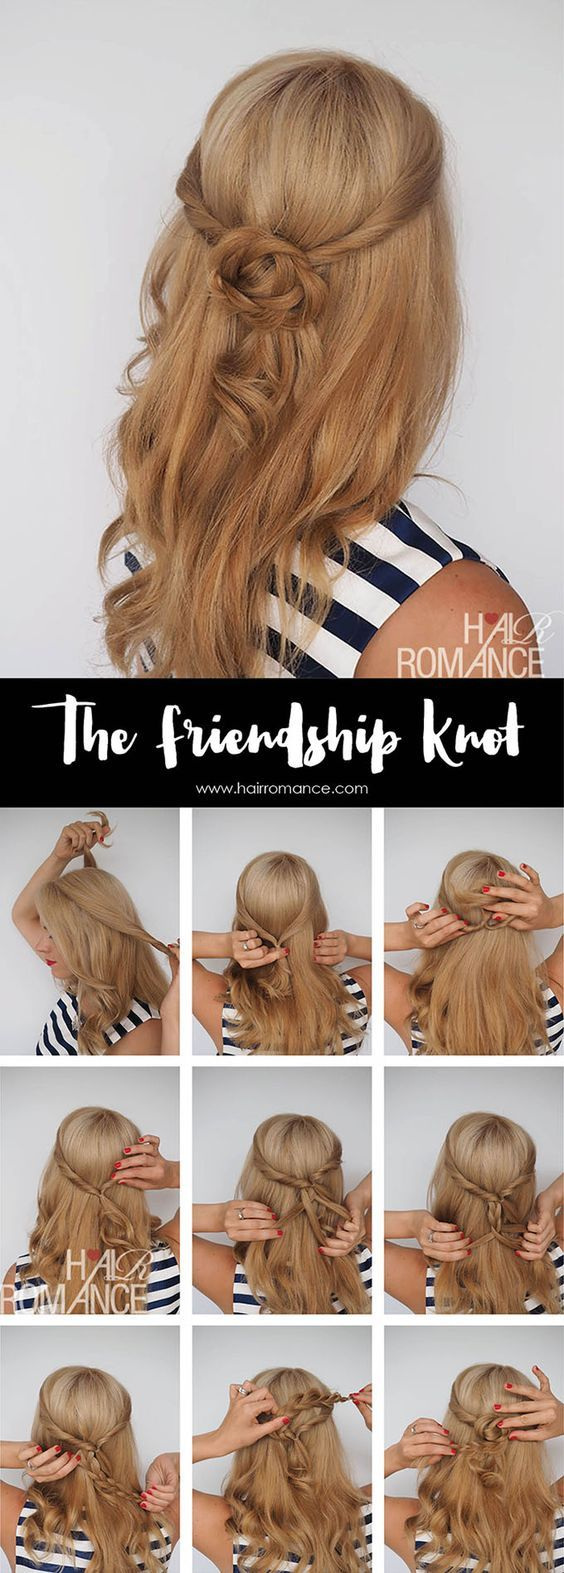 The friendship knot; Get the scoop on these wedding hairstyle tutorial looks from Hair Romance's amazing blog. hairromance.com